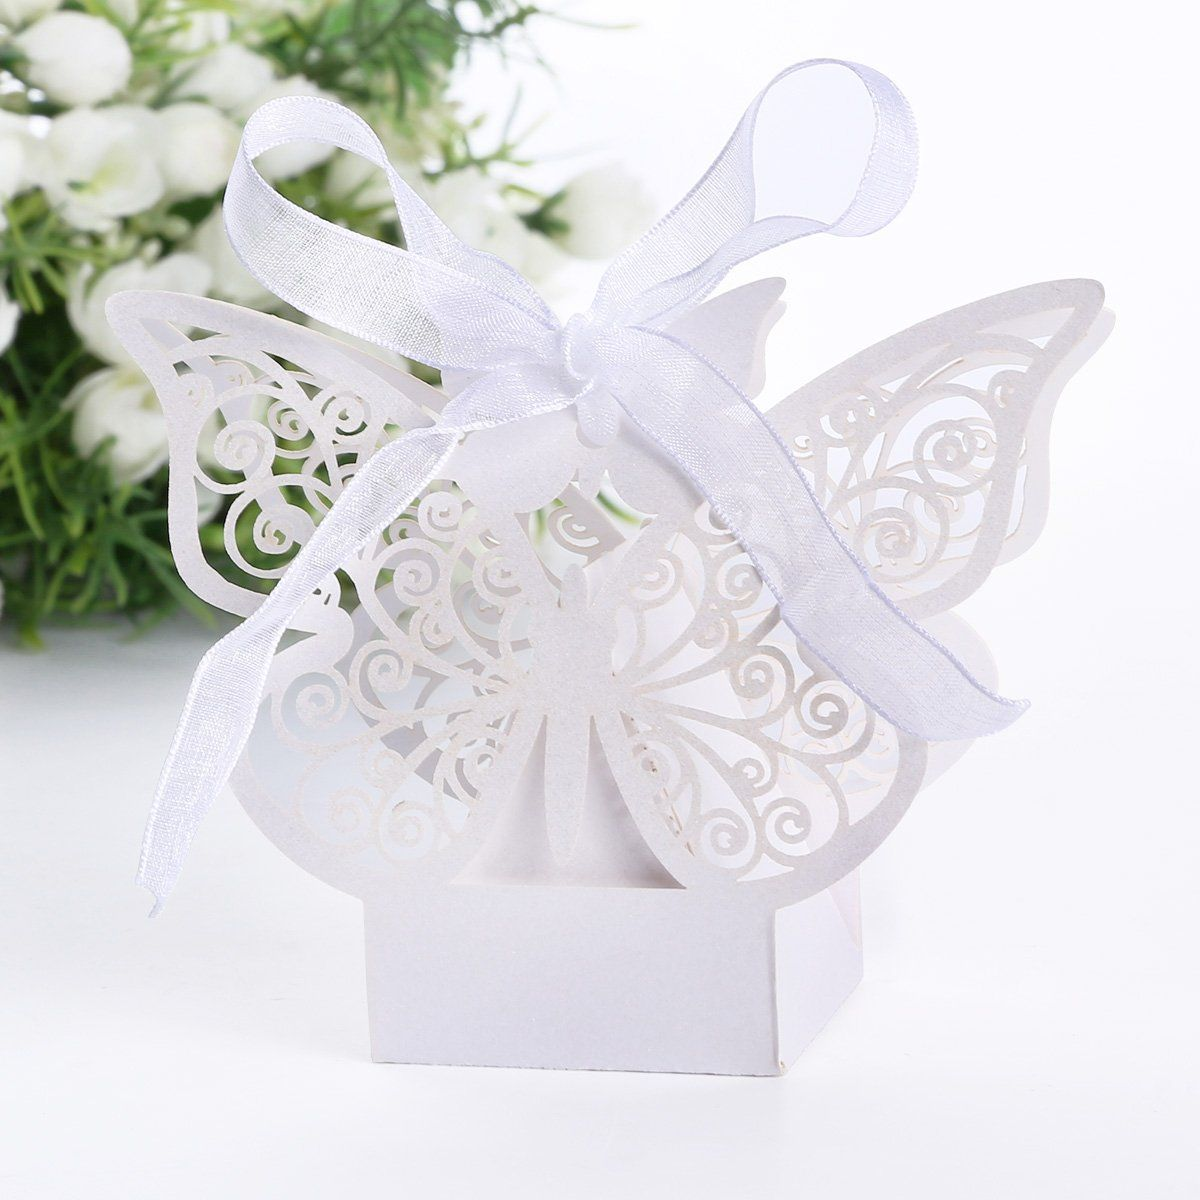 20pcs Sweets candy box Grand butterfly for wedding baptism | Festive ...